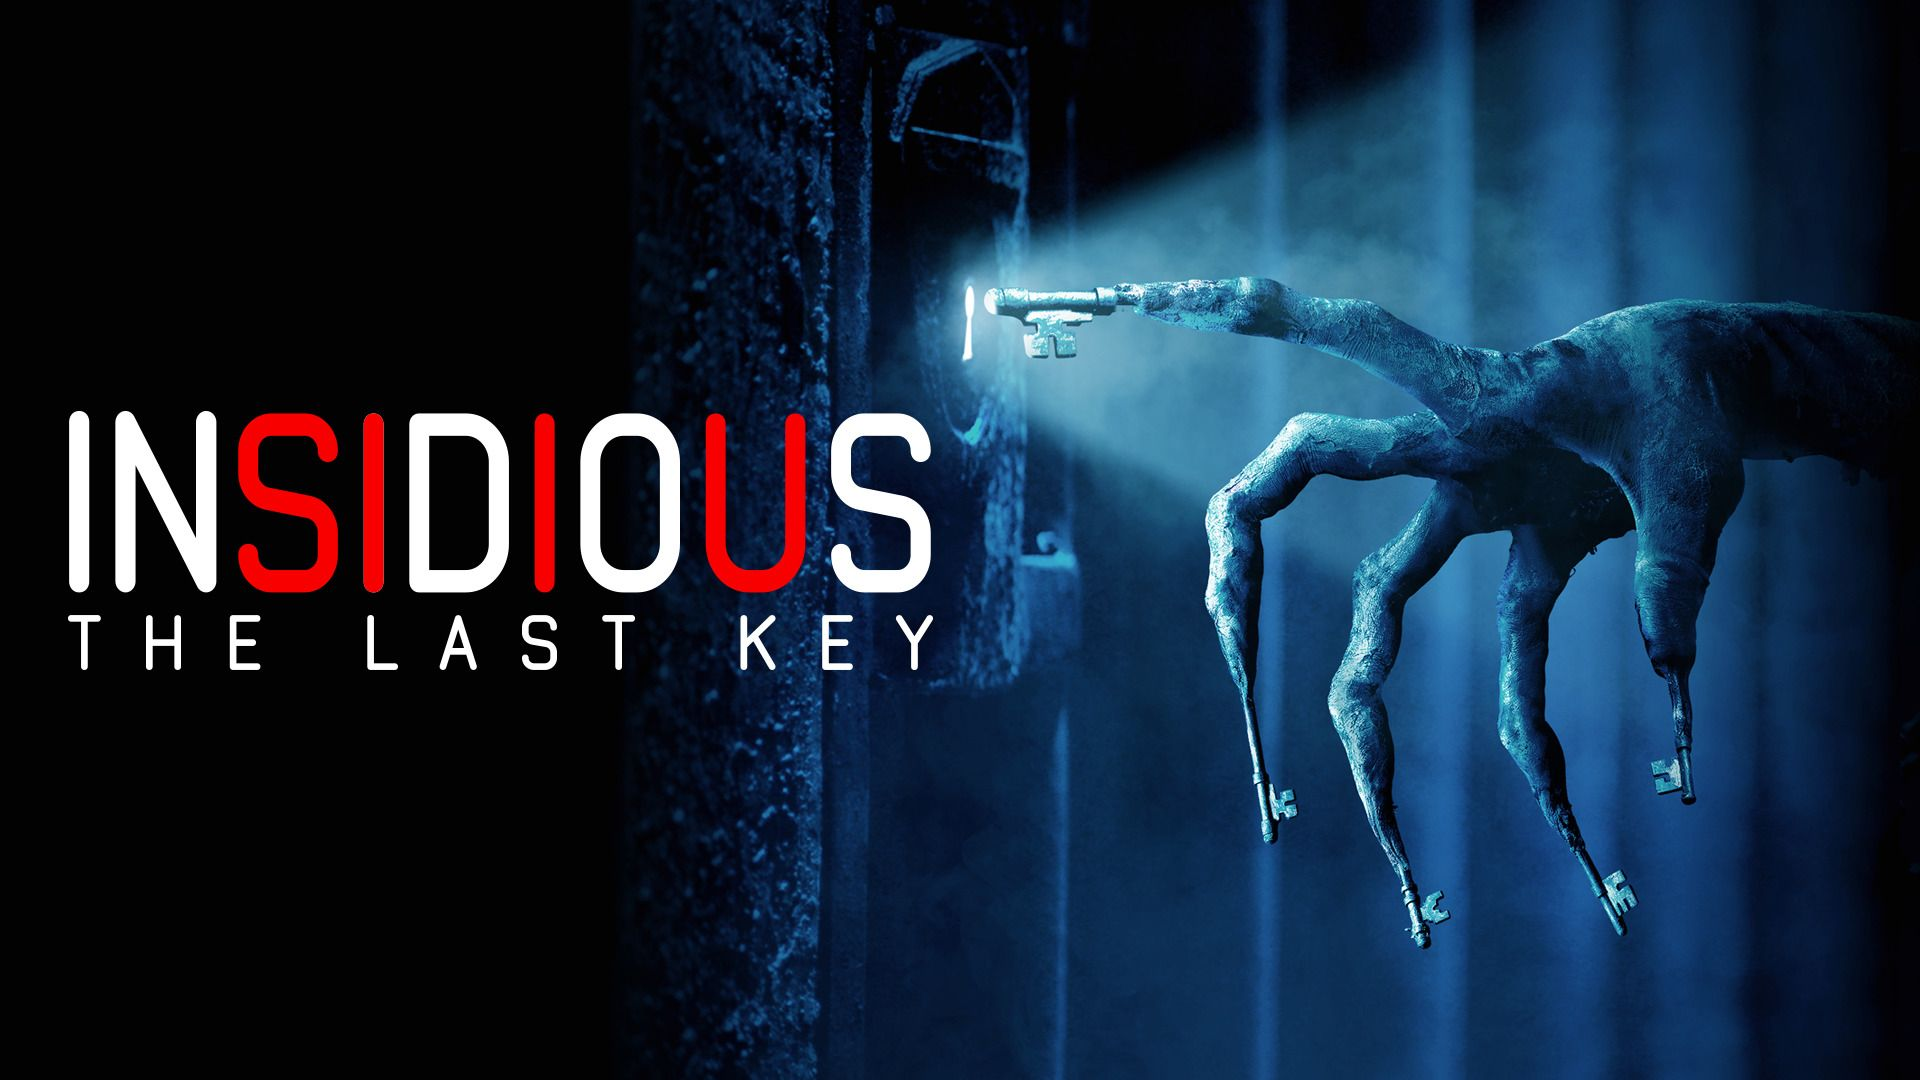 Watch Insidious Prime Video